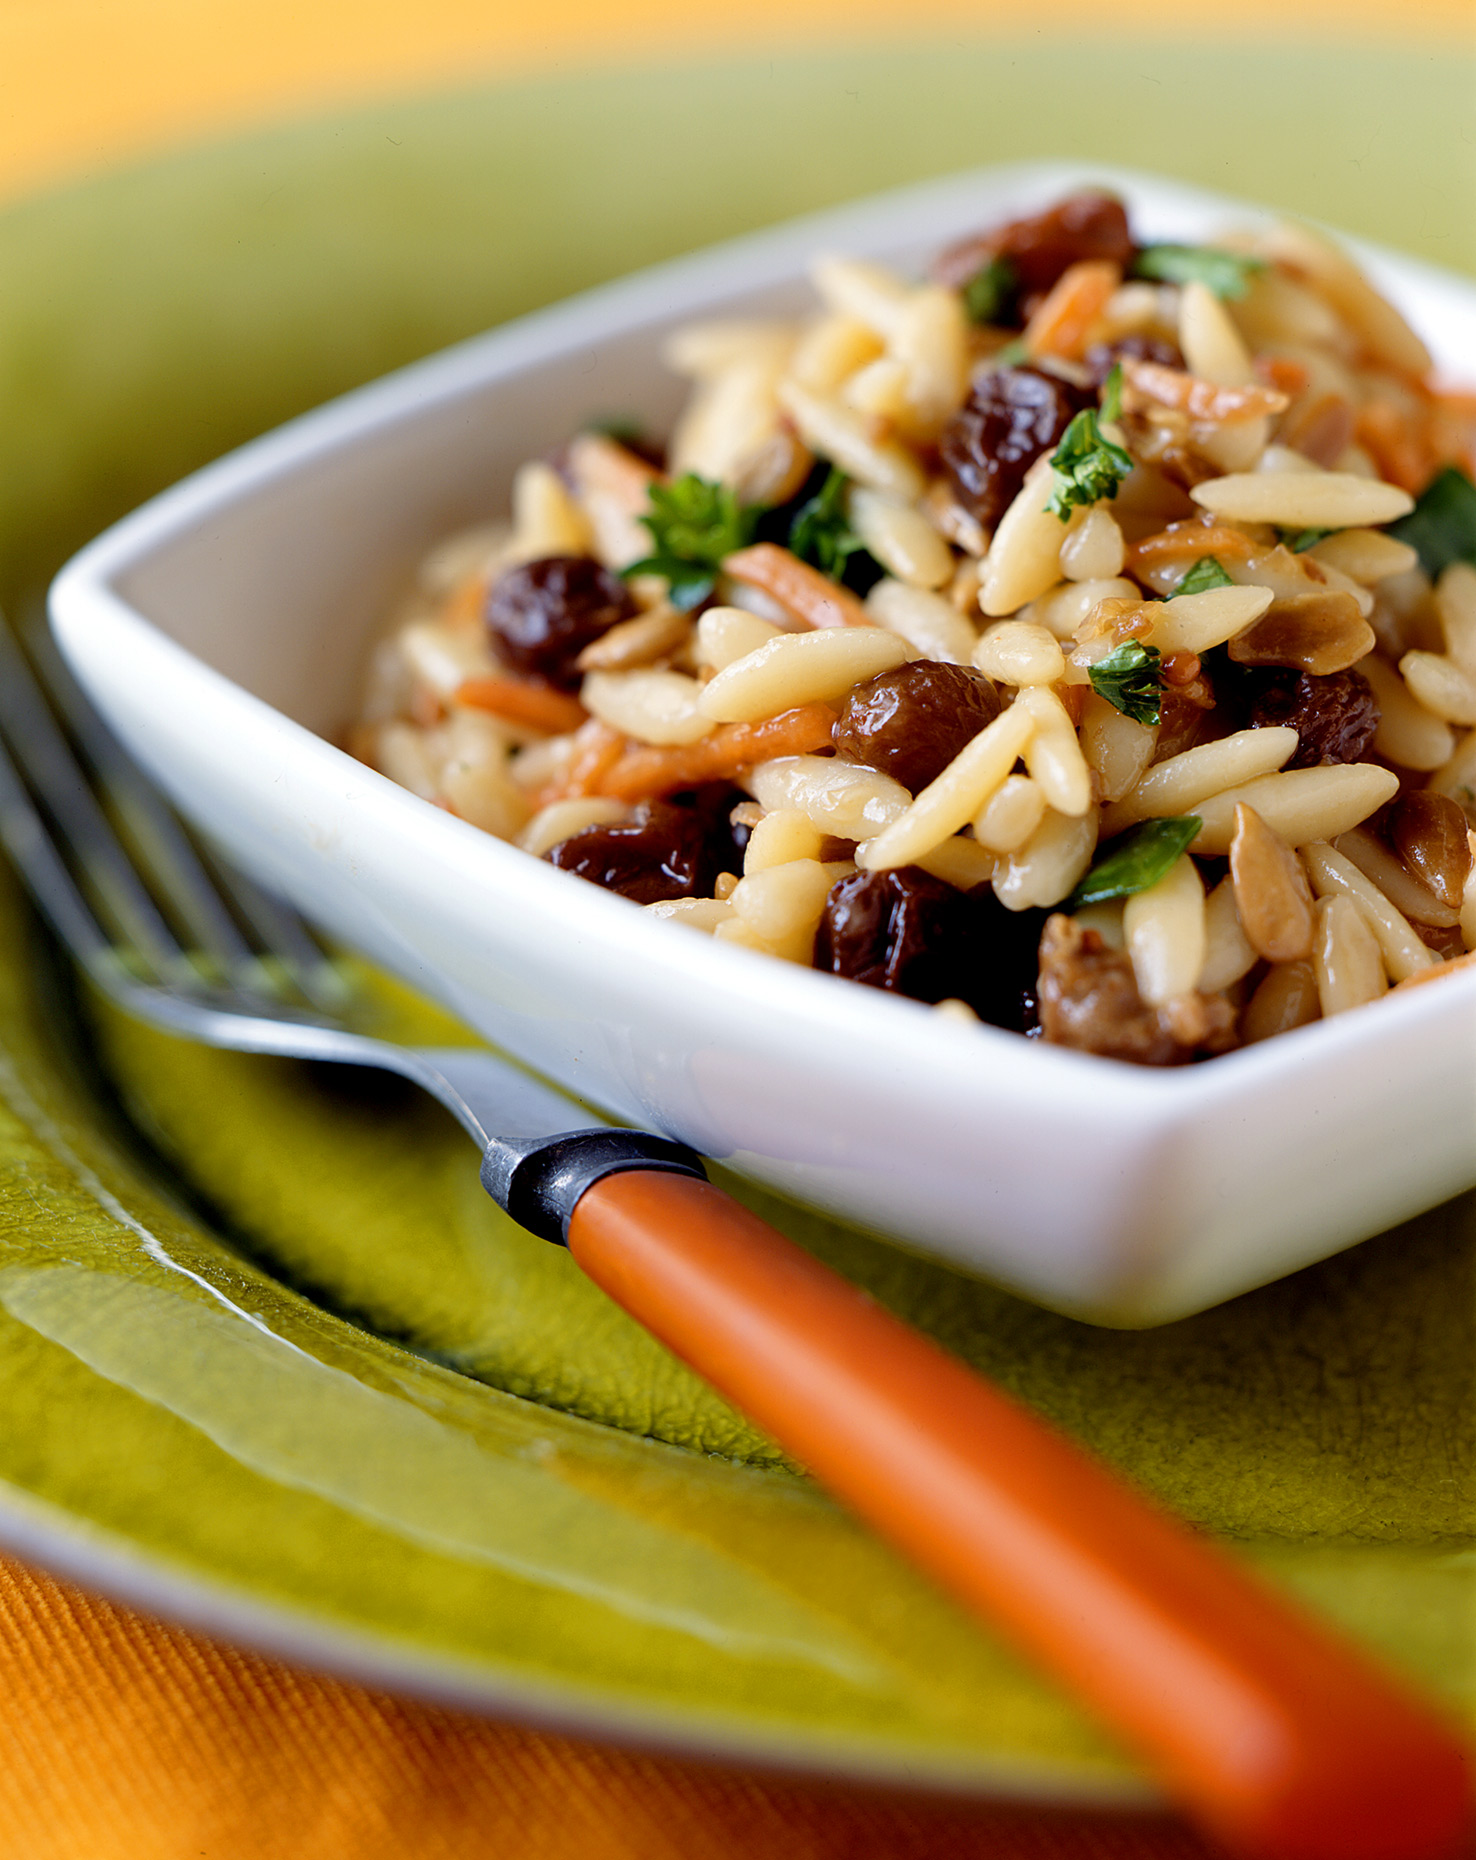 #38-raisin-rice-salad-